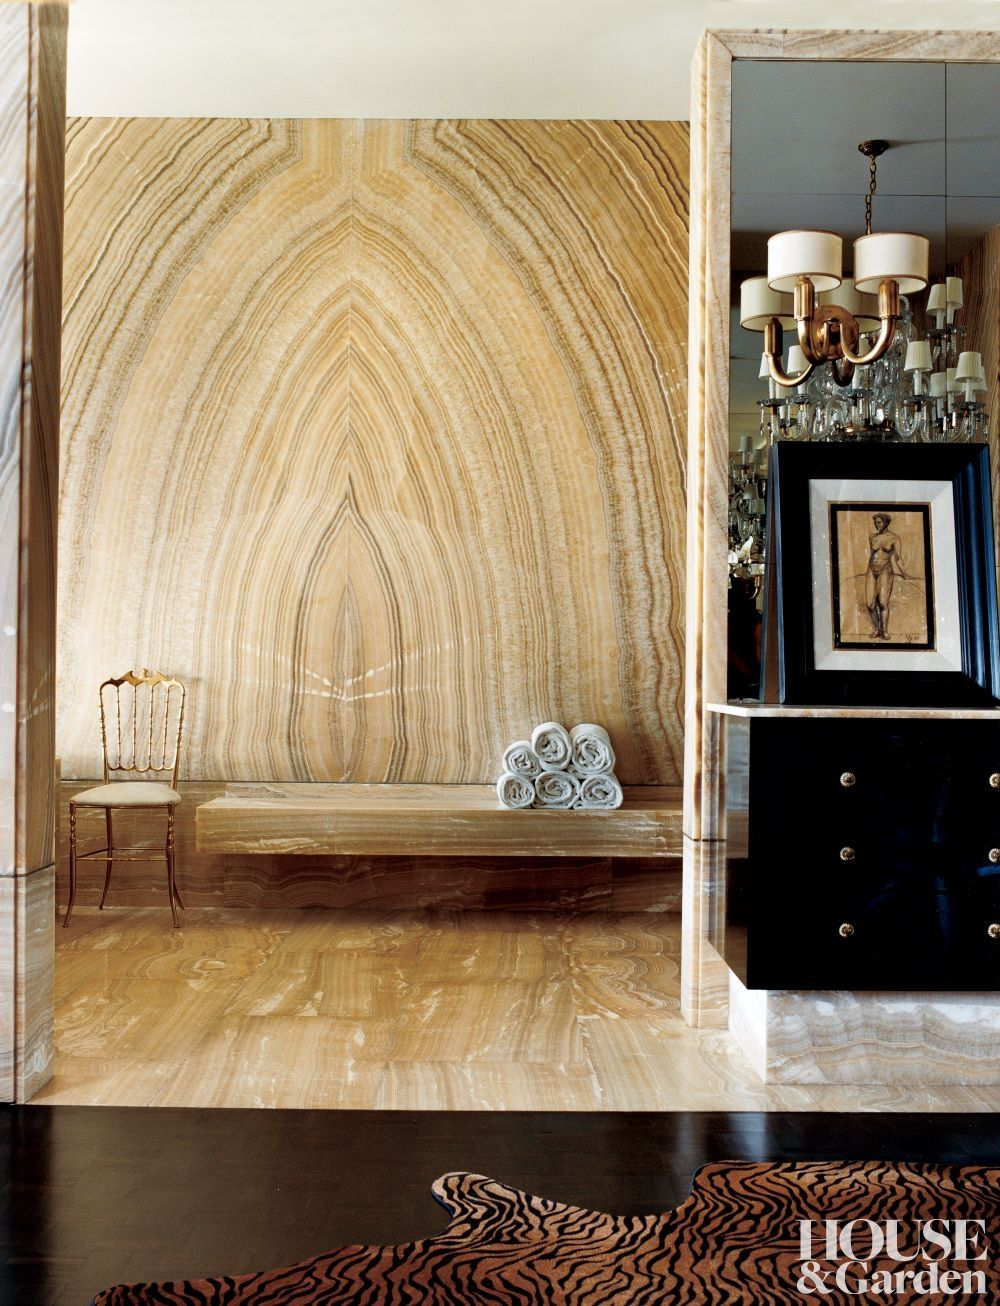 Amazing bookmatched onyx wall in a beverly hills home designed by